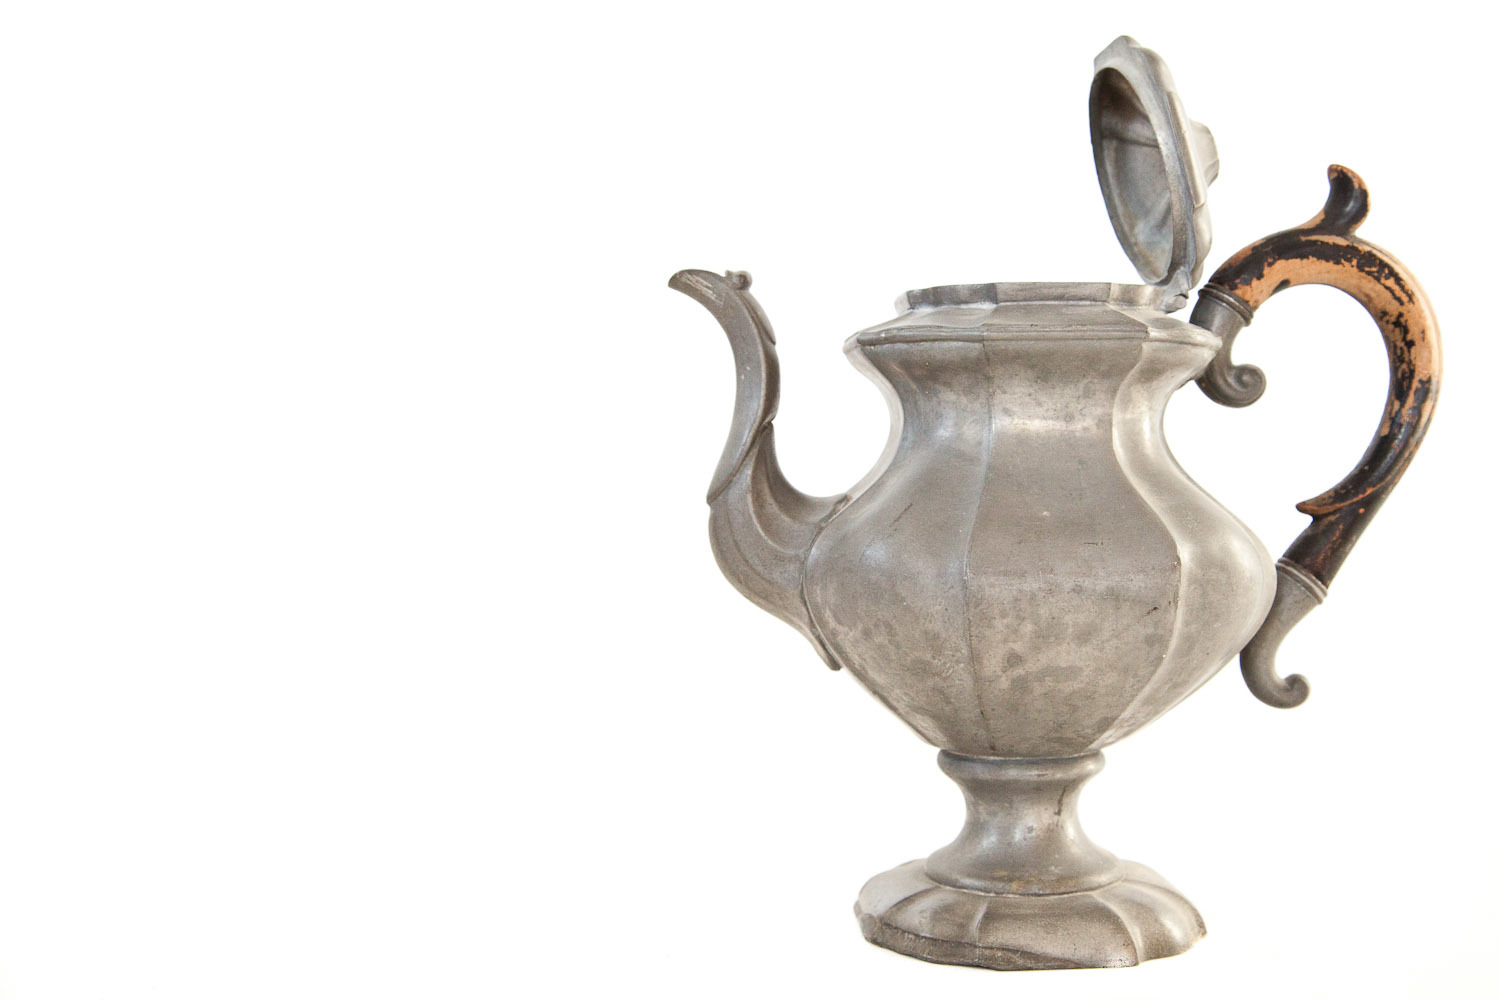 (V-021) PEWTER TEAPOT WITH WOODEN HANDLE